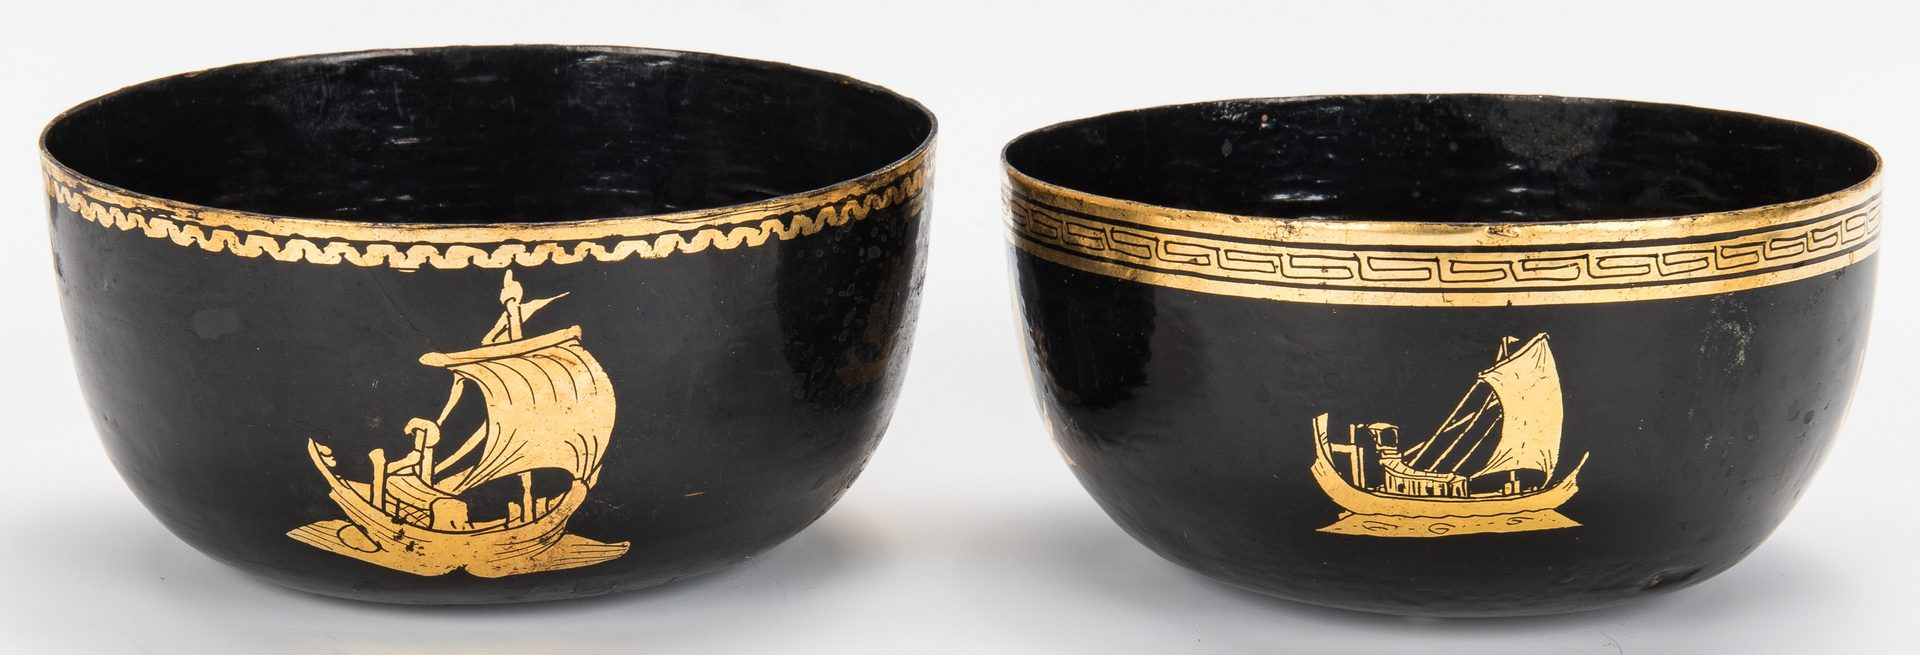 Lot 236: Group of 27 Asian Lacquerware Items